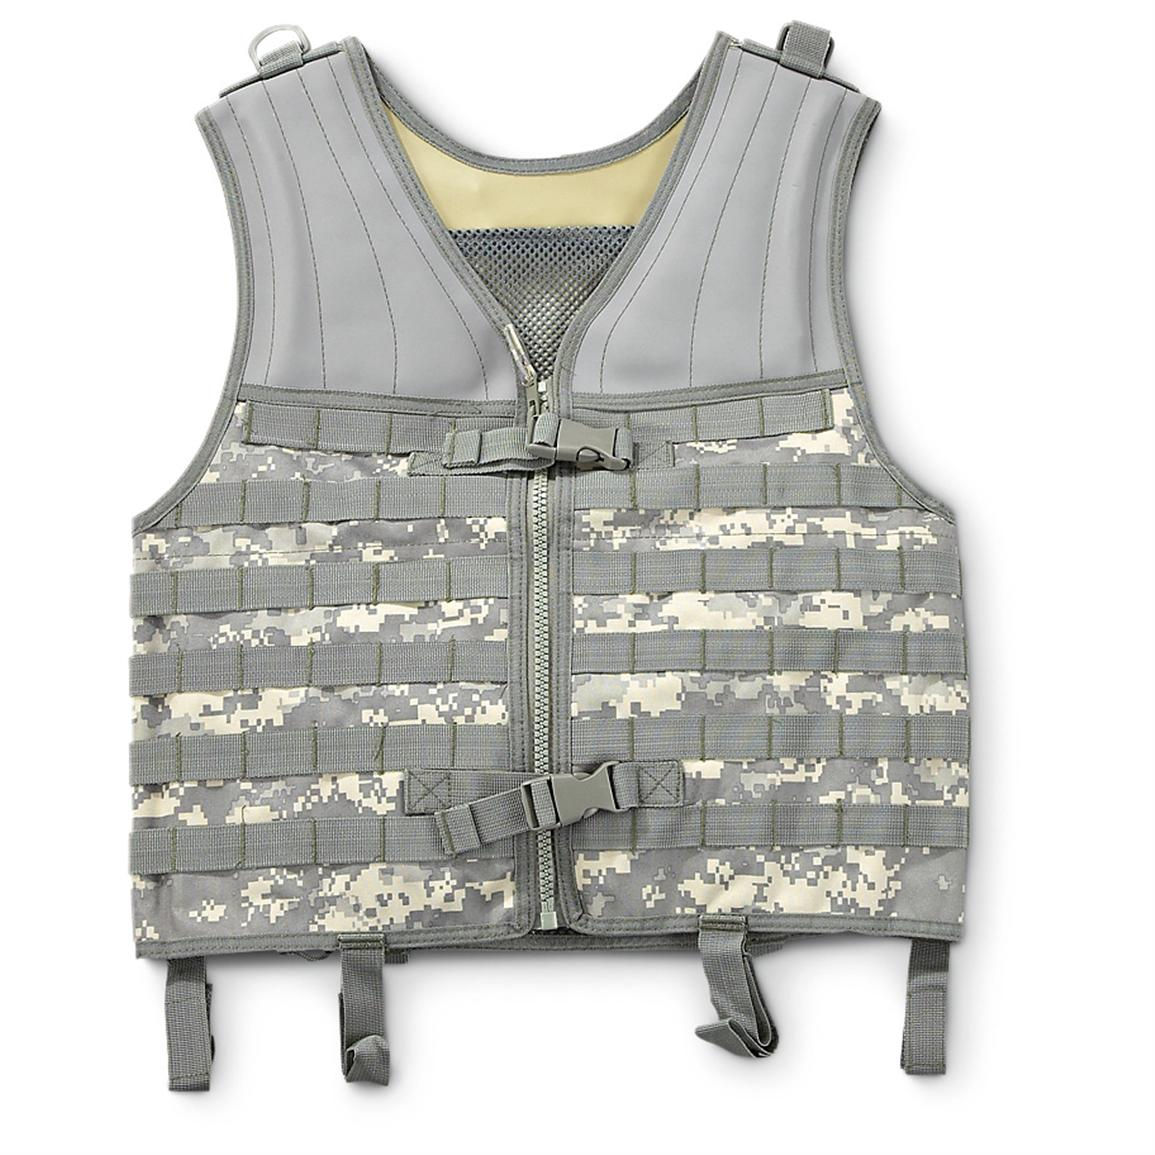 Military-style M.O.L.L.E. Tactical Vest, Army Digital